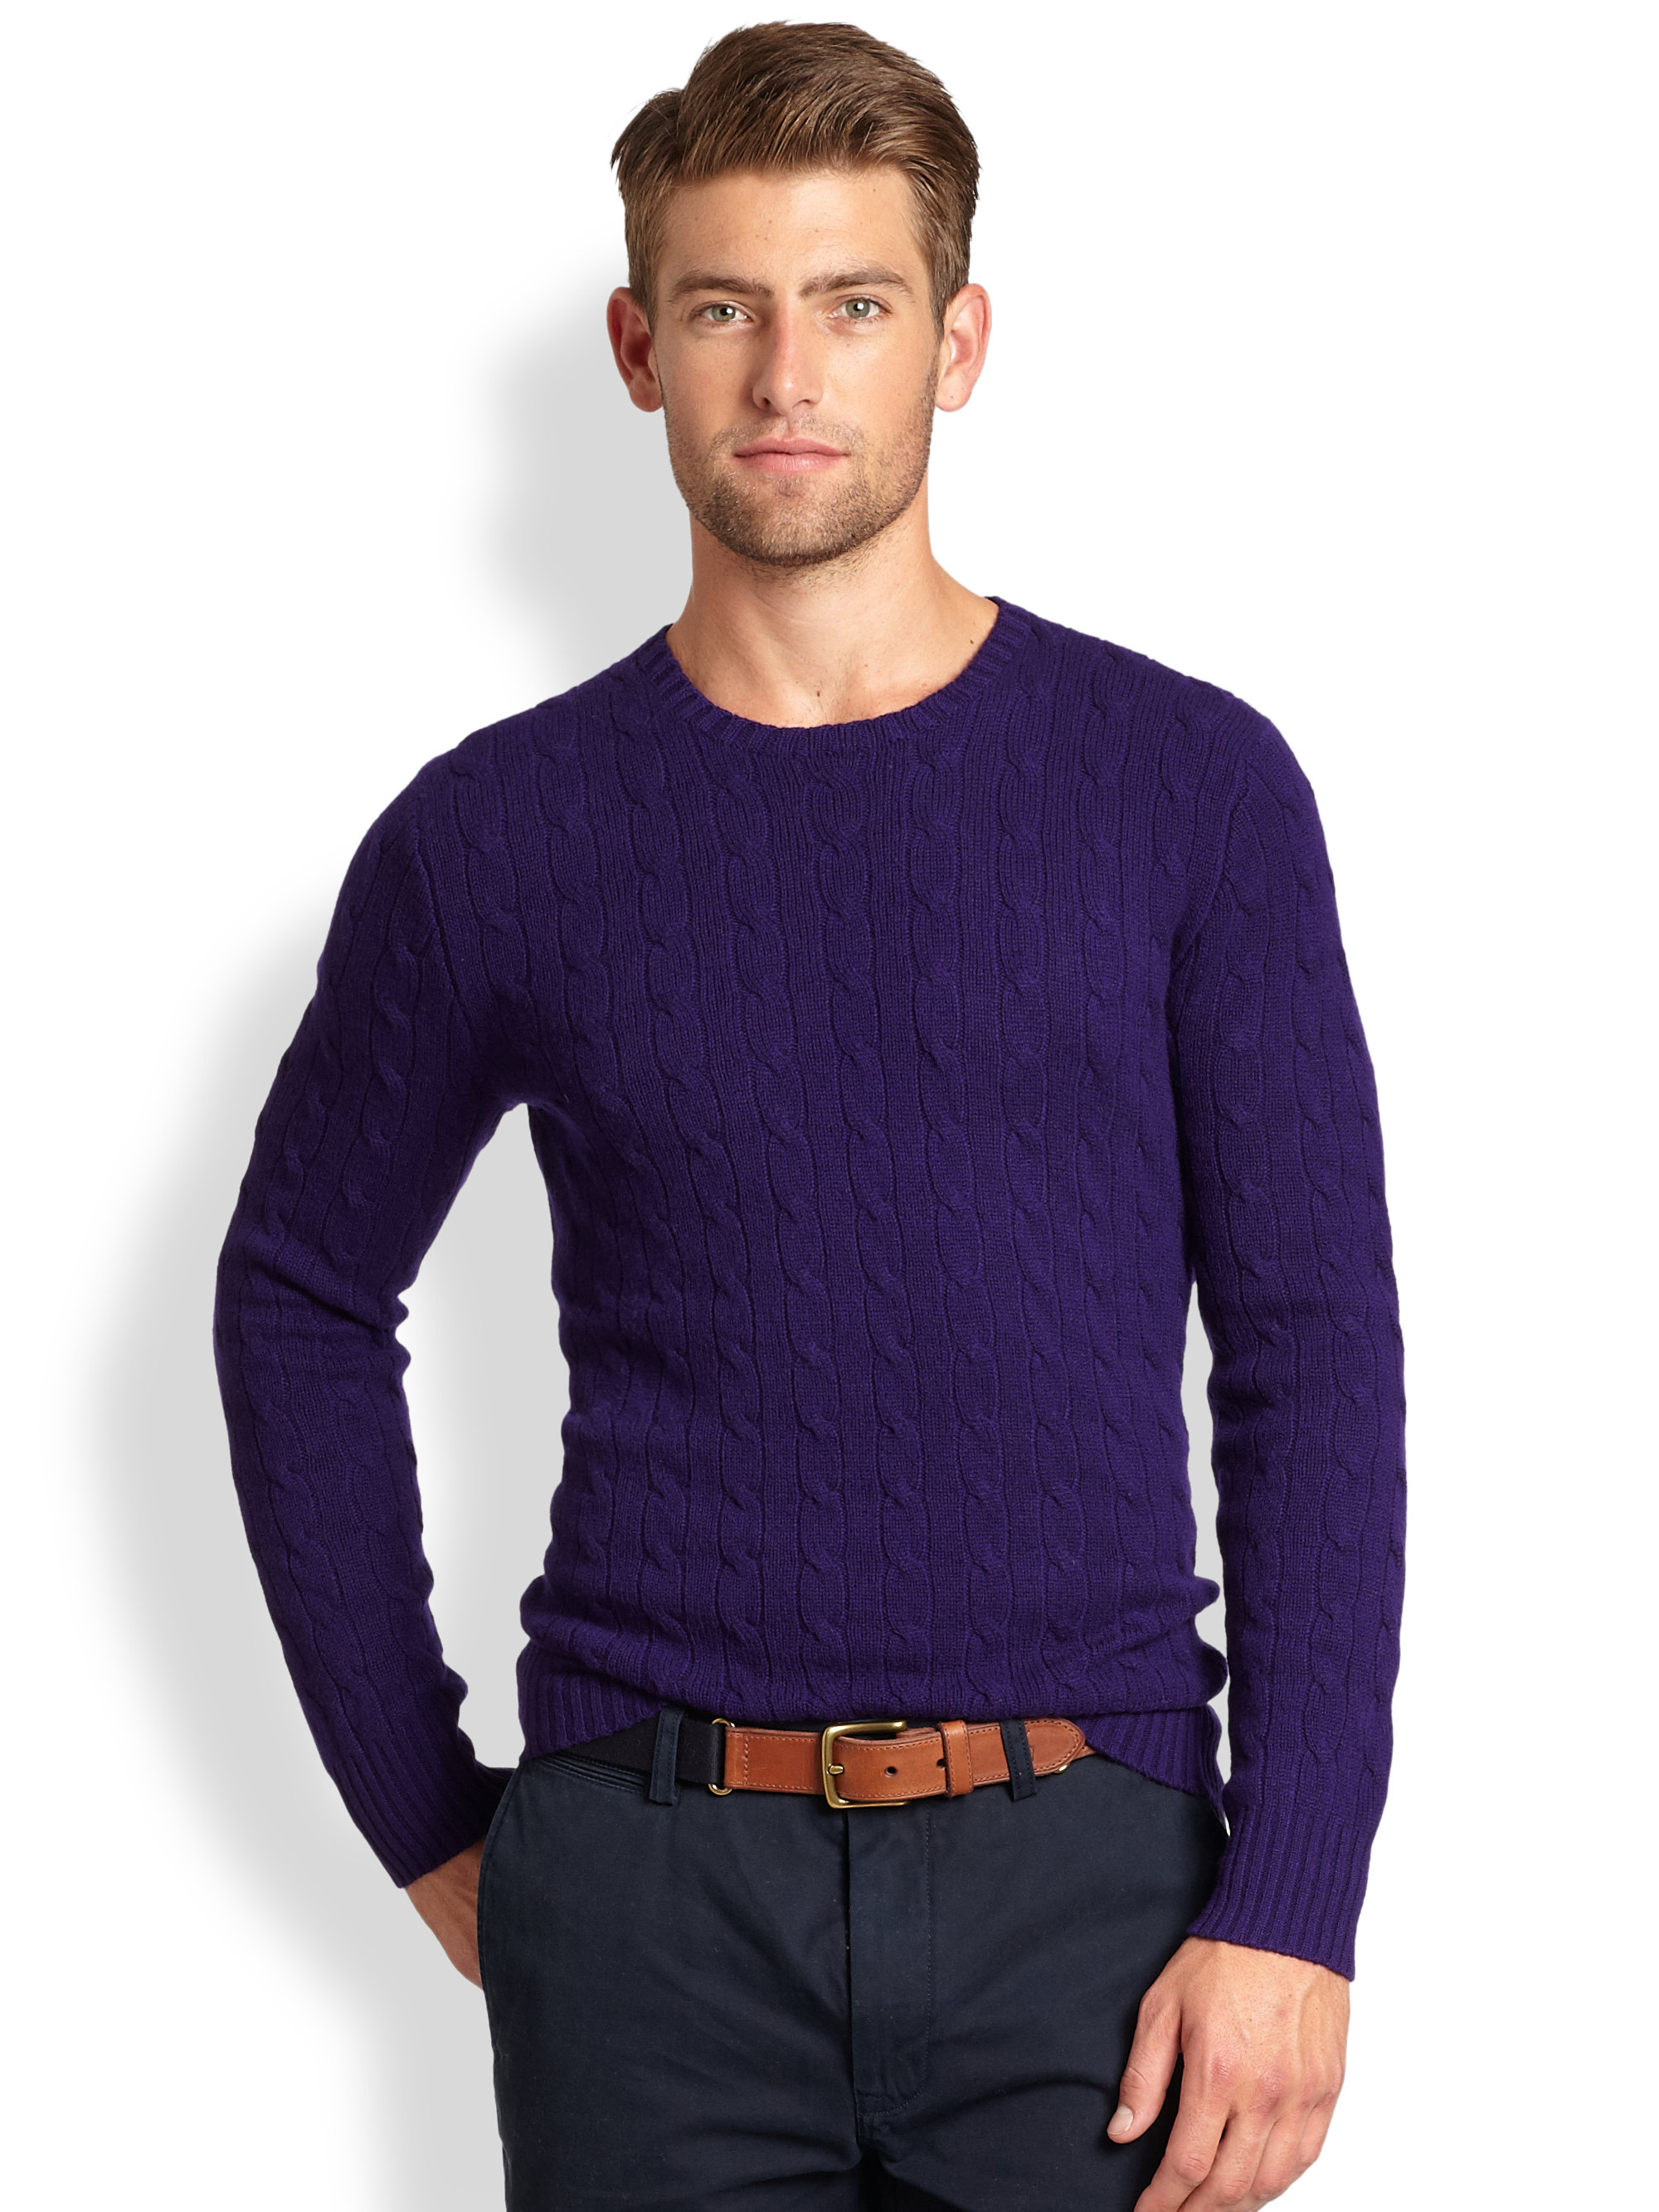 Polo ralph lauren Cable Knit Cashmere Crewneck Sweater in Purple ...